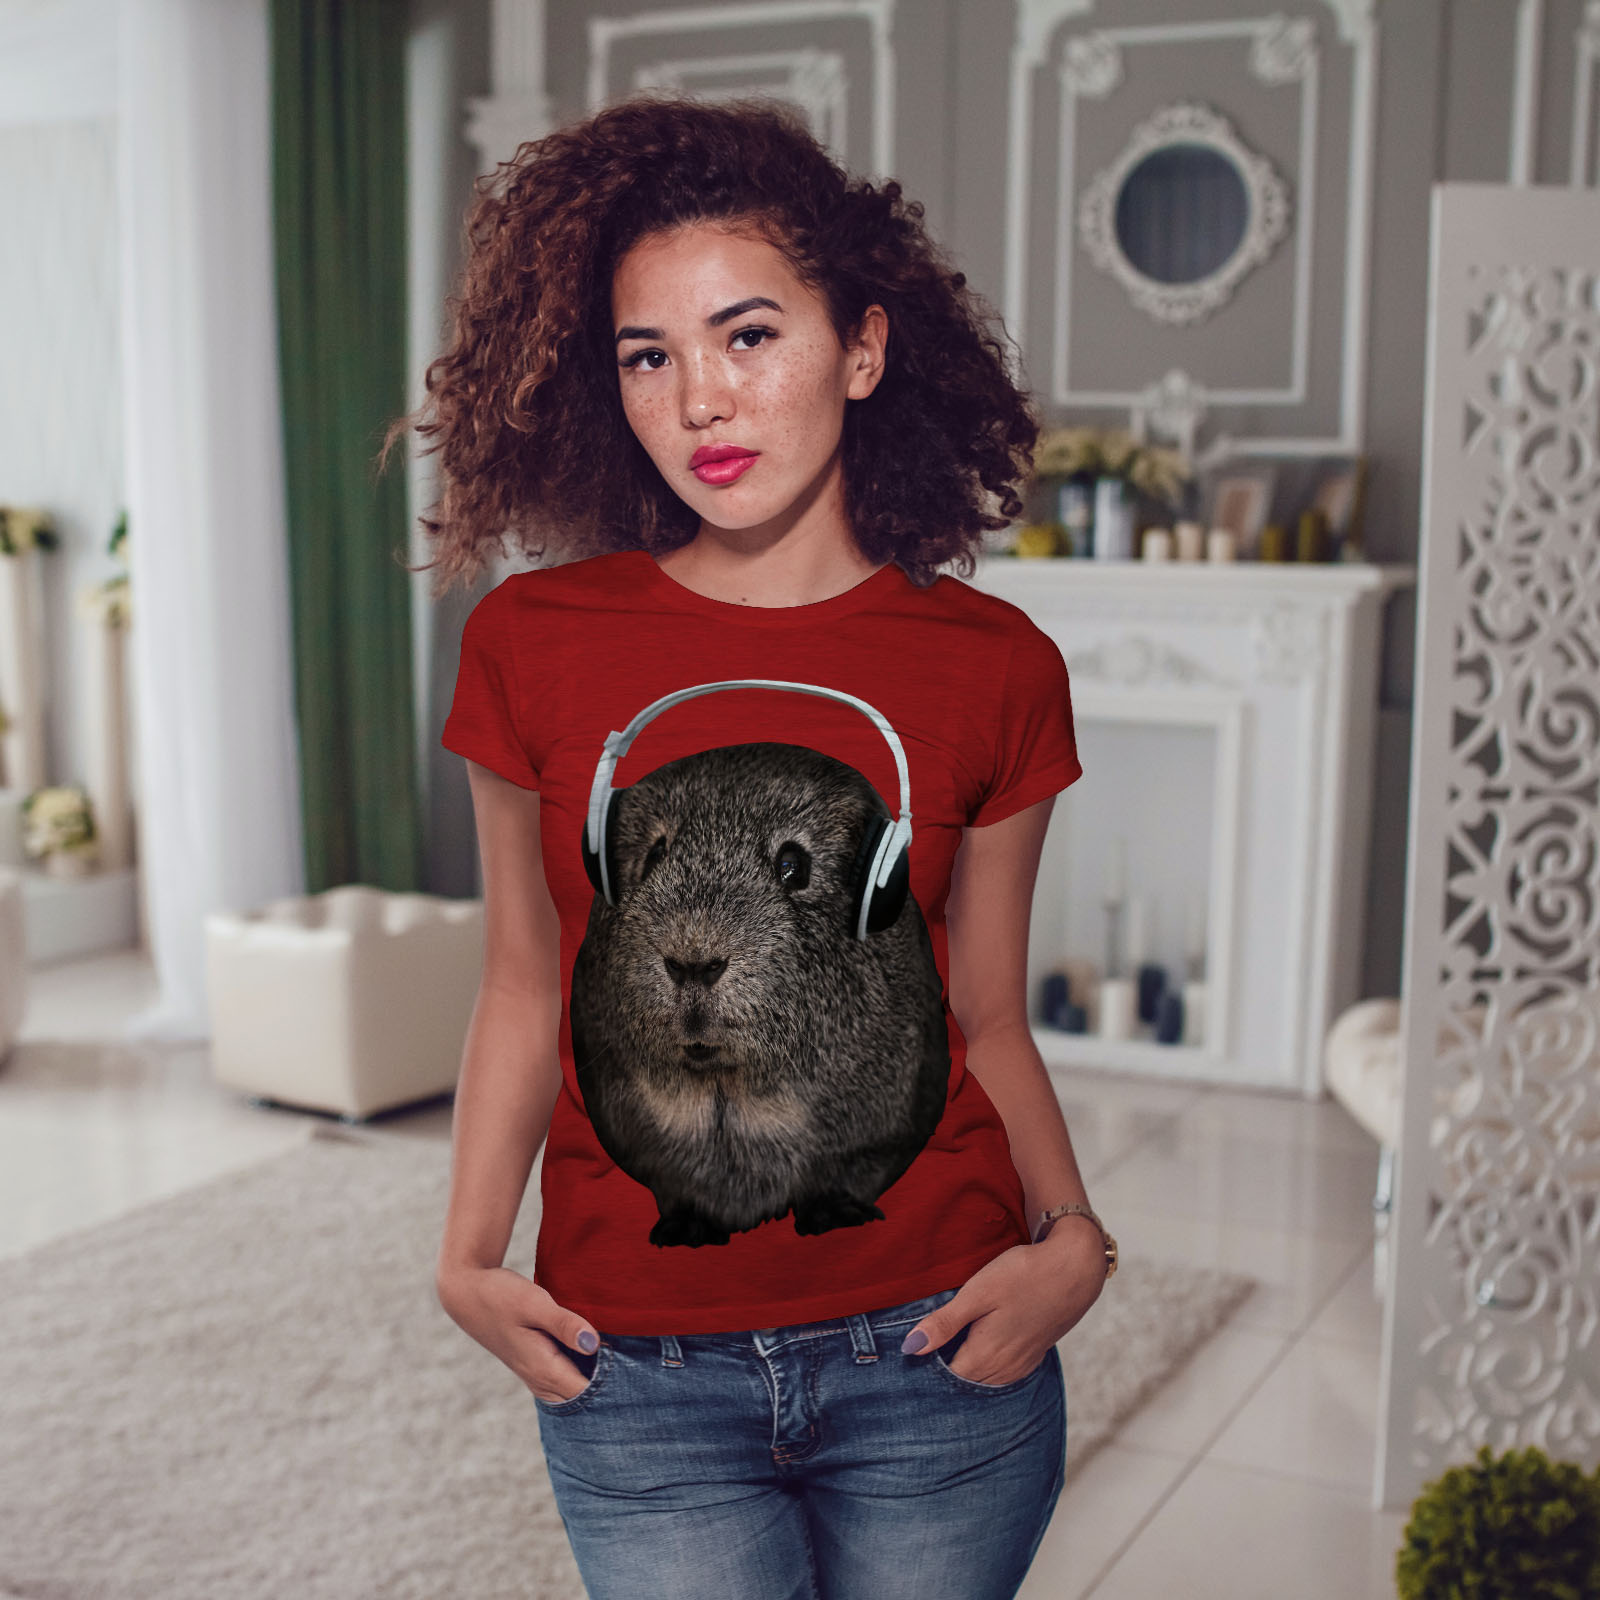 Wellcoda-Guinea-Maiale-BEAT-Divertente-T-shirt-da-donna-design-casual-Animale-Stampato-Tee miniatura 11